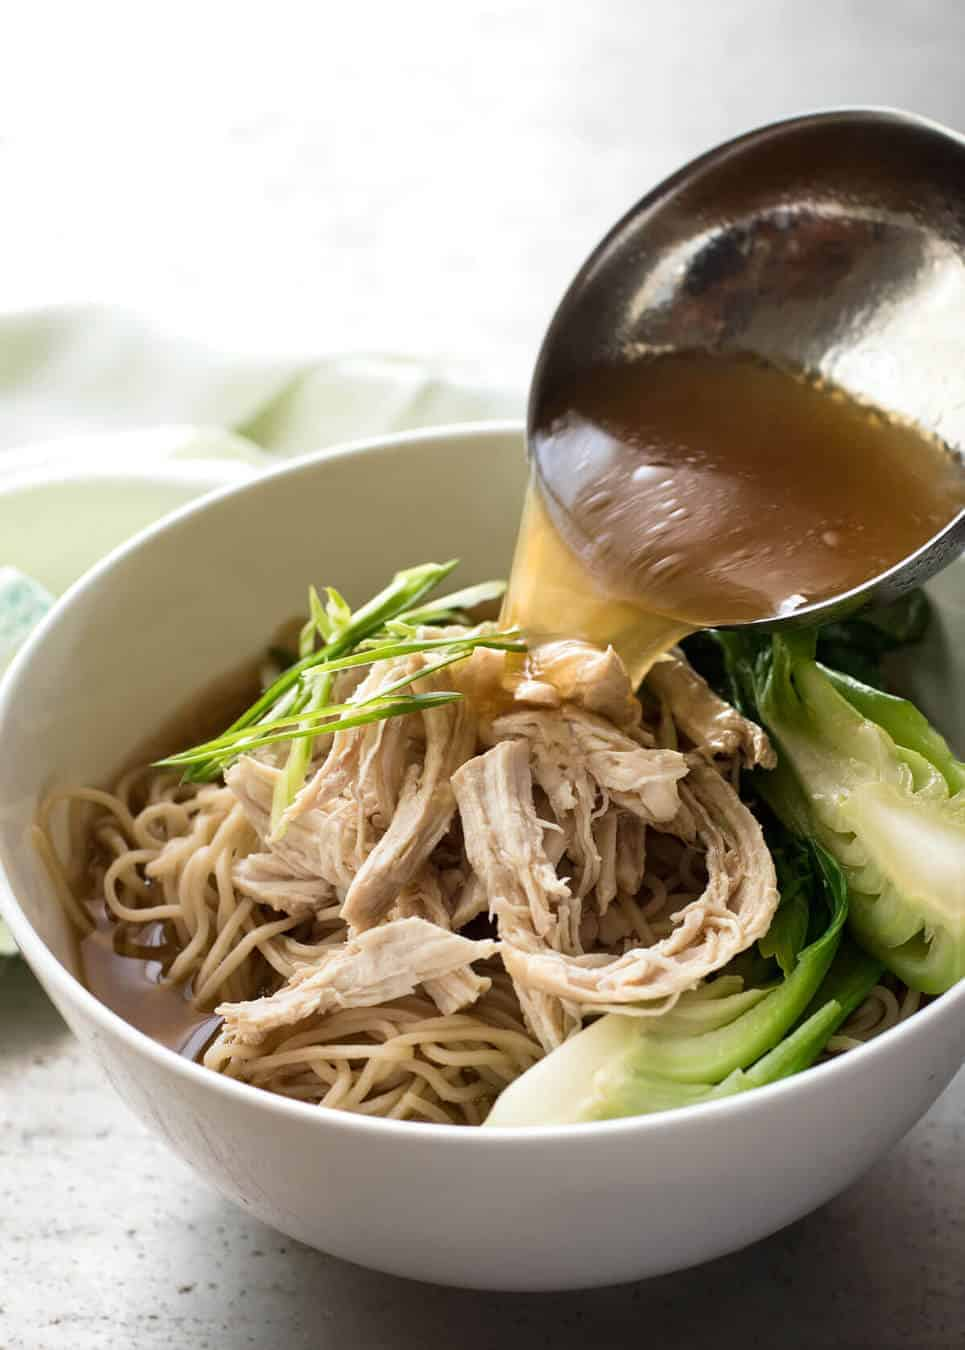 A fast and easy PROPER Chinese soup broth is the key to a noodle soup that tastes as good as what you get at restaurants. Just 20 minutes to make!